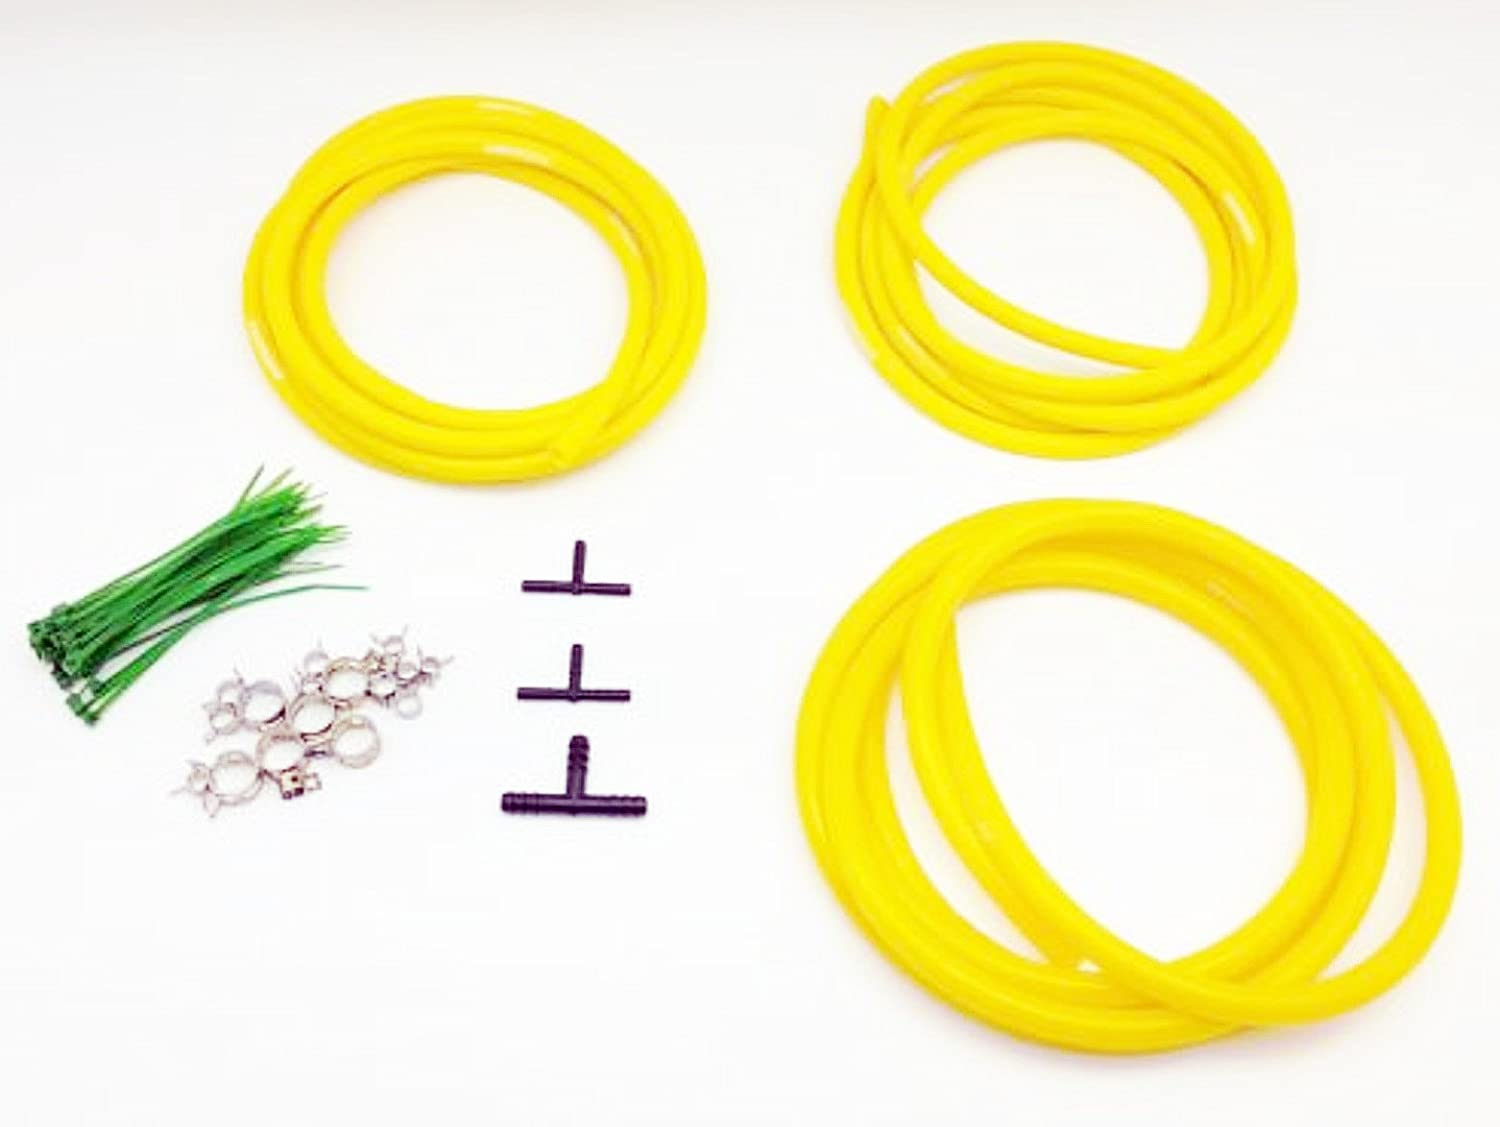 Autobahn88 Silicone Vacuum Hose Dress Up DIY Kit, Universal Fit All Nissan,Subaru,MMC, Toyota,Honda,Mazda, Mustang,Chevrolet,Ford, Suzuki,Citroen,Audi,BMW, Benz,Mini,Volkswagen,Fiat, etc (Yellow)